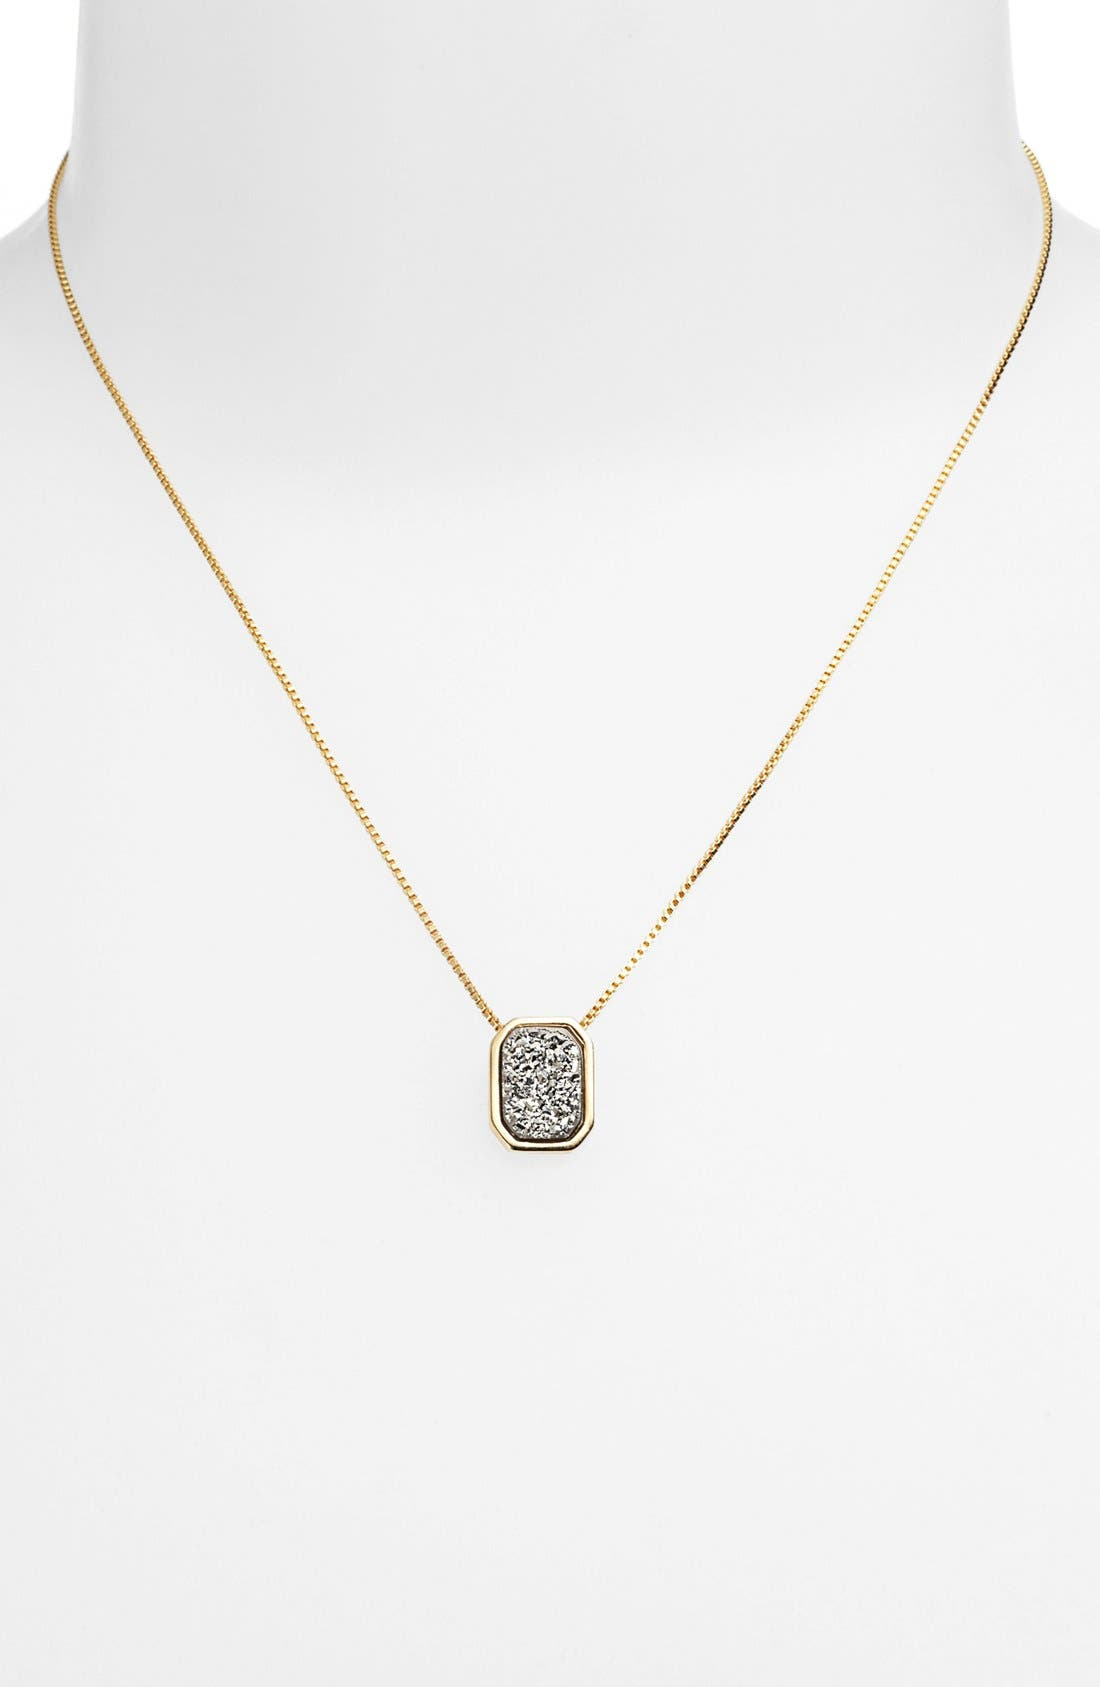 Alternate Image 1 Selected - Marcia Moran Octagon Drusy Pendant Necklace (Online Only)